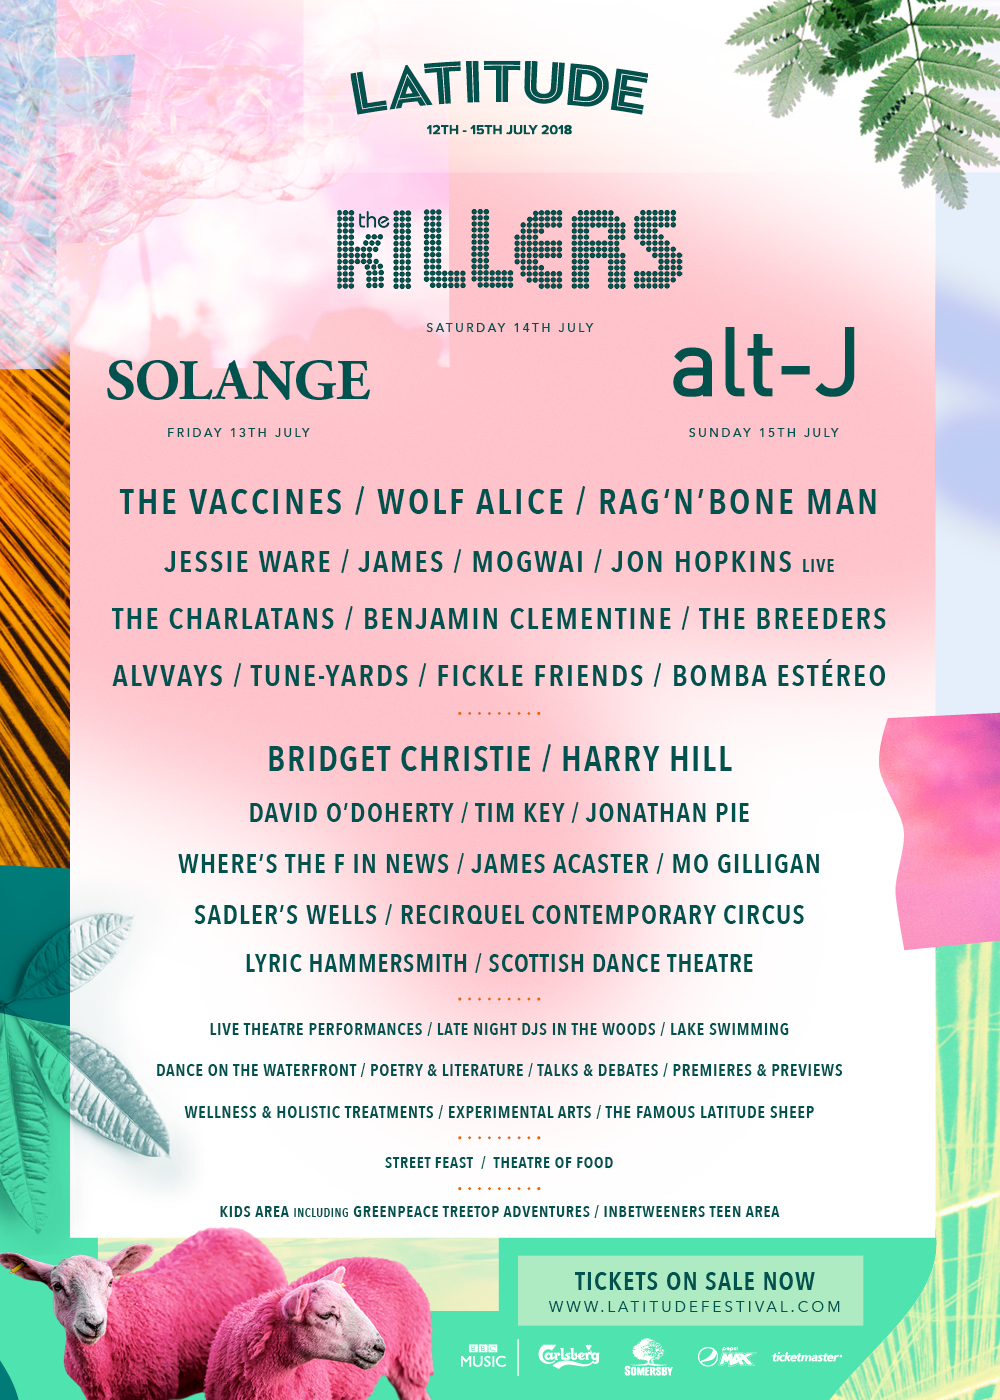 Latitude Festival 2018 line-up poster